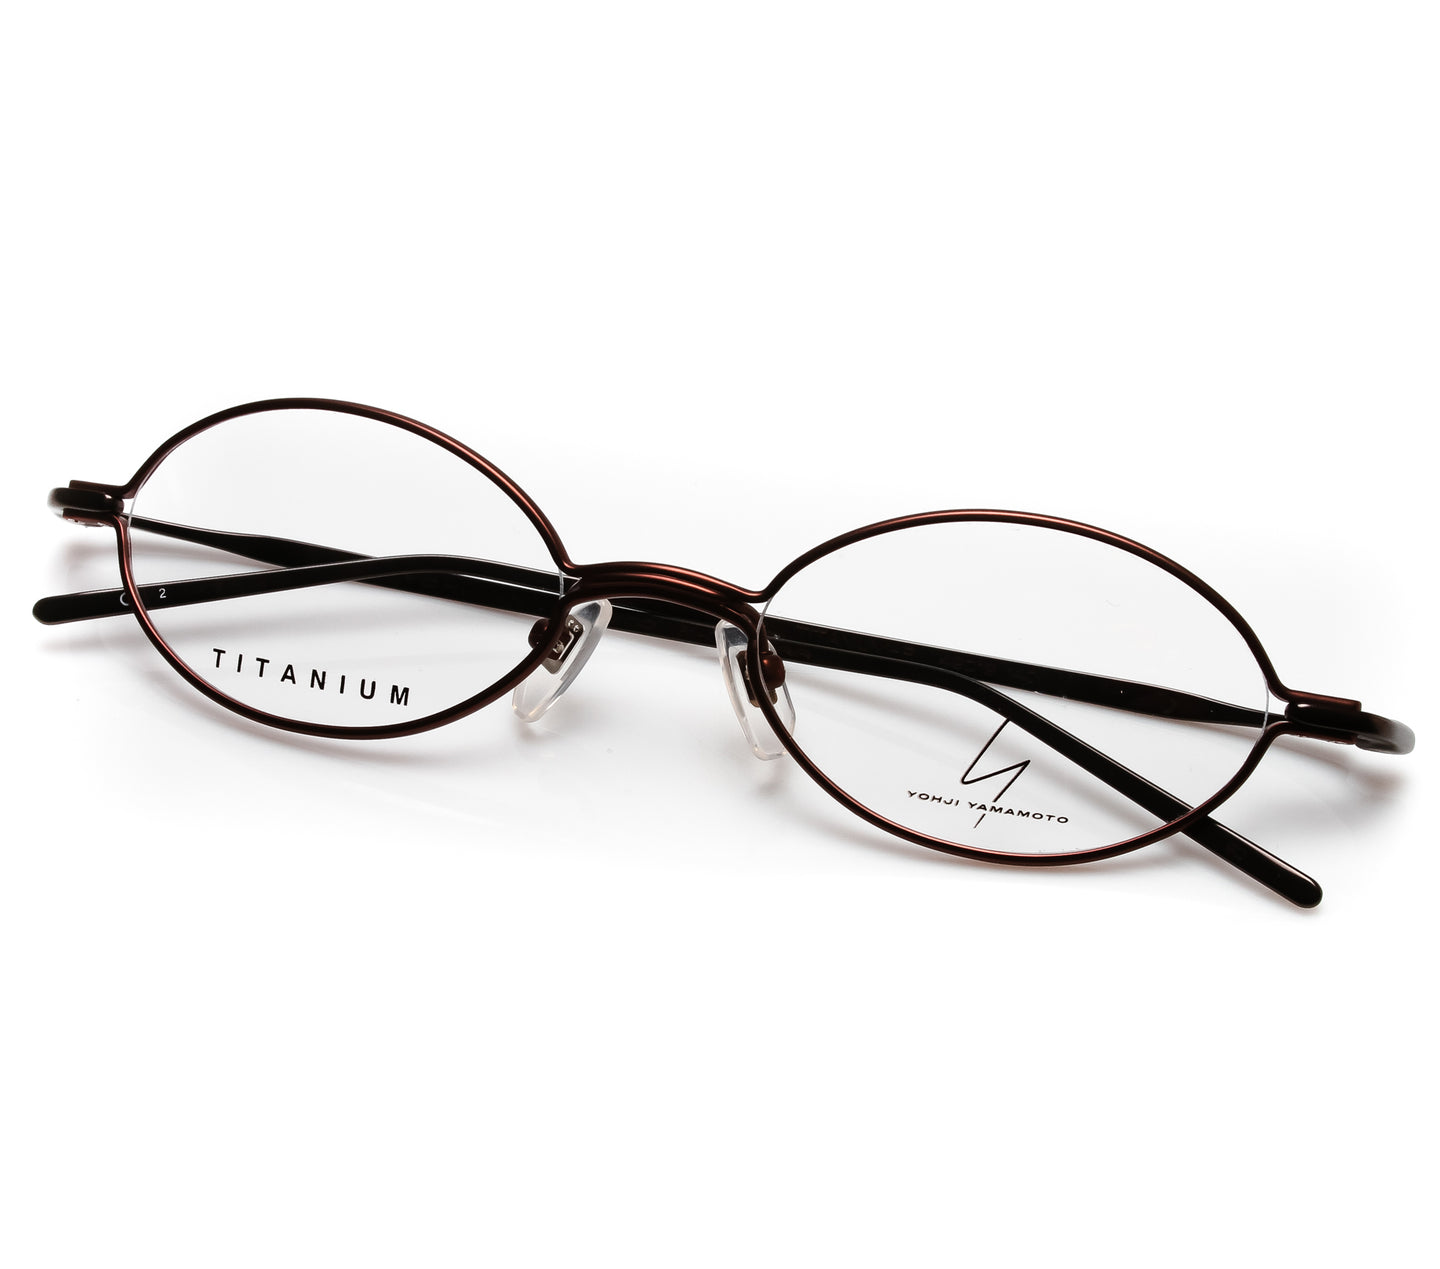 Yohji Yamamoto 51 0009 Col2 Thumbnail, Yohji Yamamoto , glasses frames, eyeglasses online, eyeglass frames, mens glasses, womens glasses, buy glasses online, designer eyeglasses, vintage sunglasses, retro sunglasses, vintage glasses, sunglass, eyeglass, glasses, lens, vintage frames company, vf